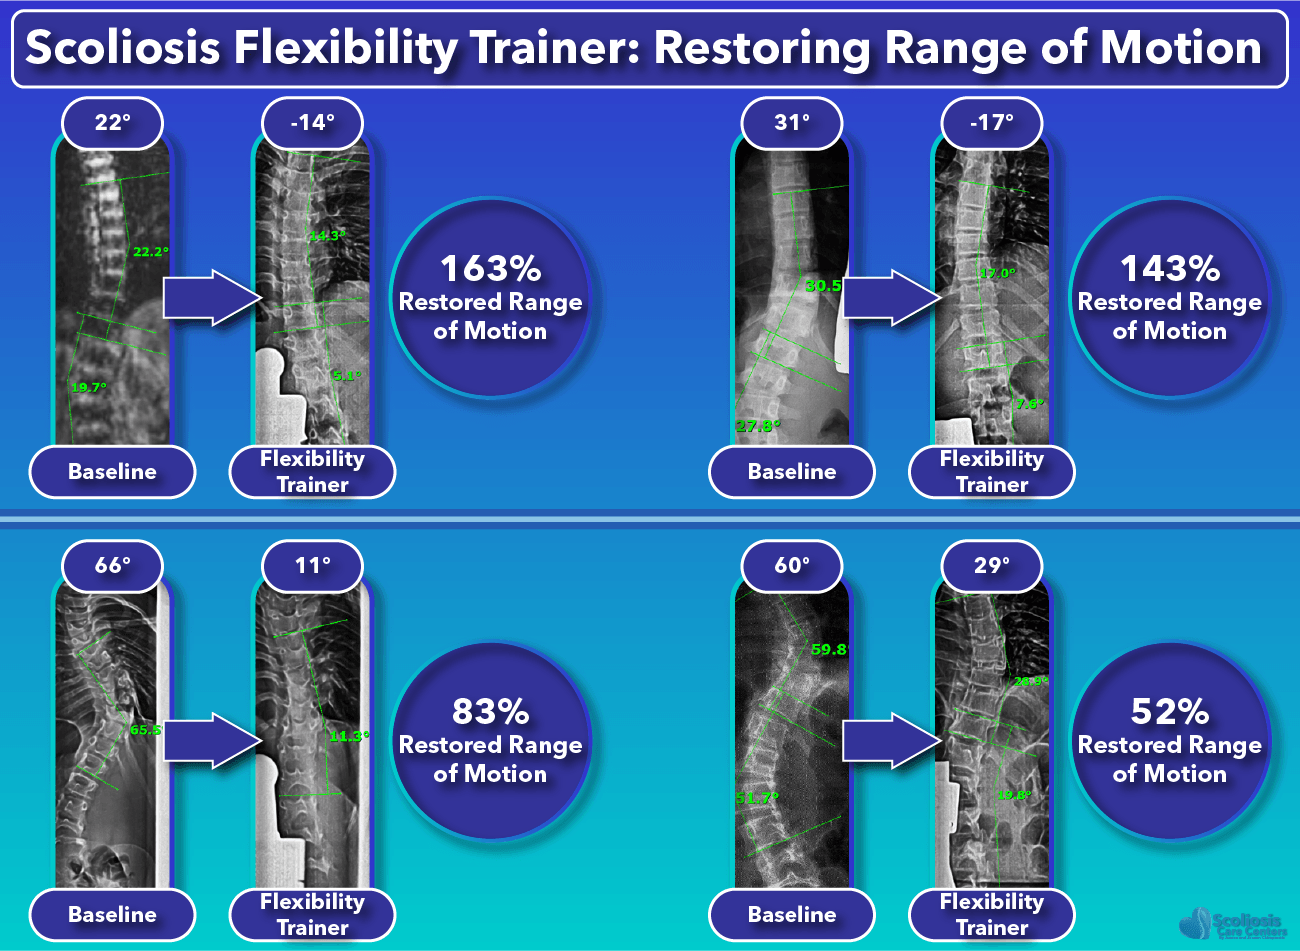 Additional Scoliosis Flexibility Trainer Range of Motion Results